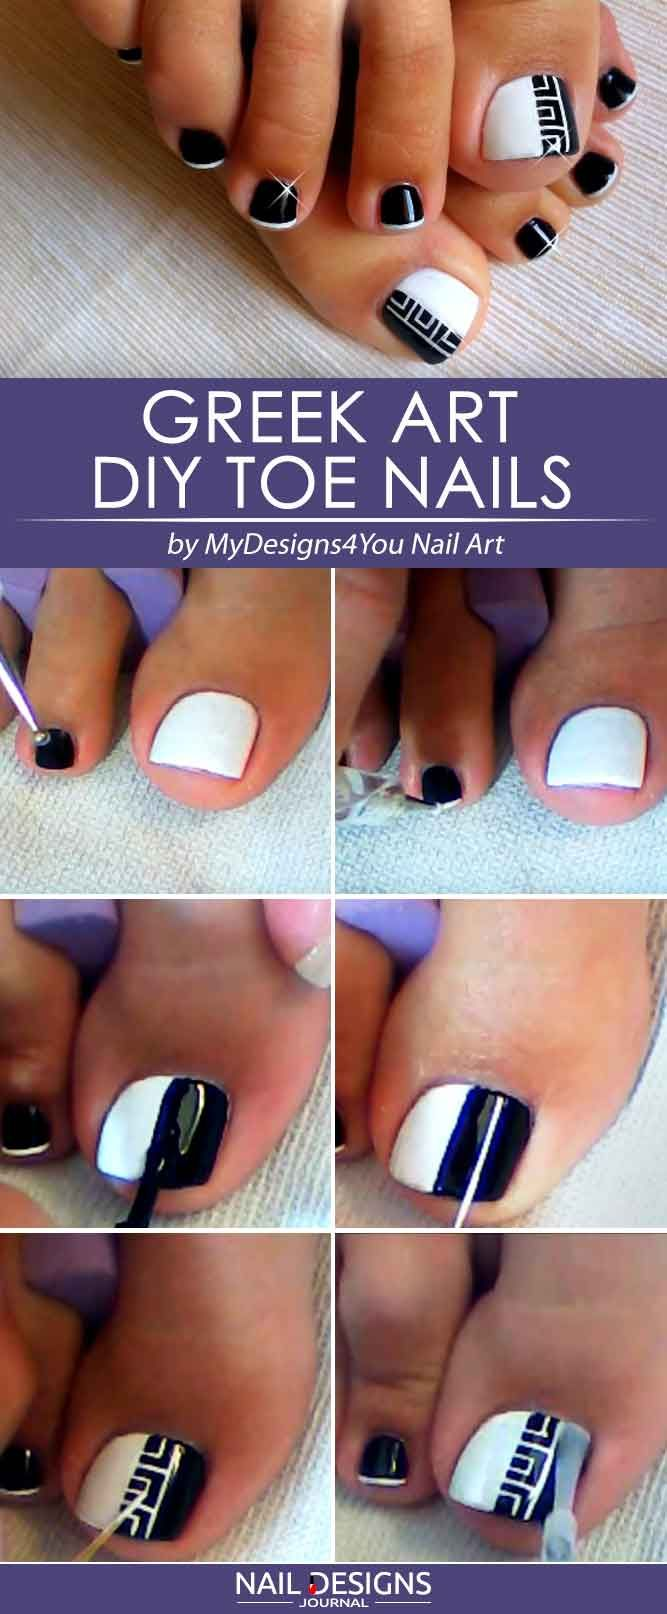 Simple Diy Toe Nail Designs Naildesignsjournal Com Easy Toe Nail Designs Toe Nail Designs Simple Nail Designs